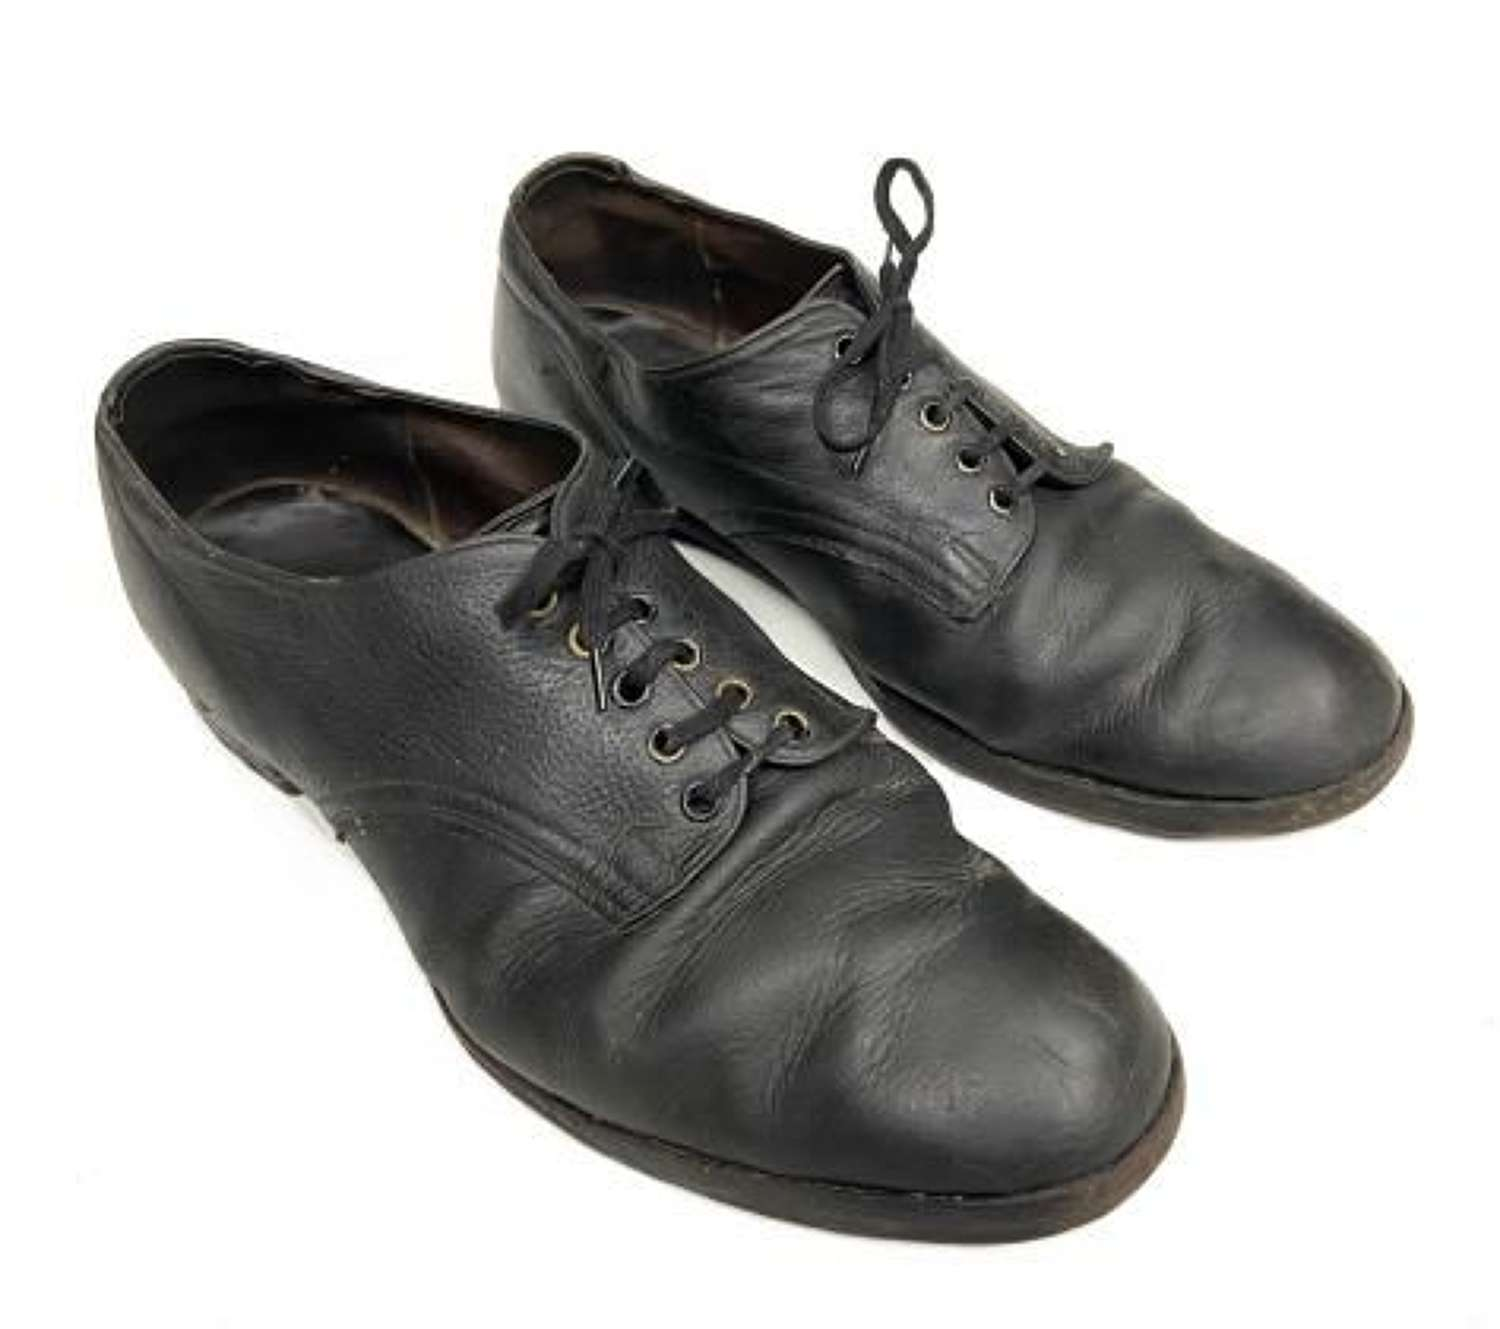 Original 1948 Dated RAF Ordinary Airman's Black Shoes - Size 9